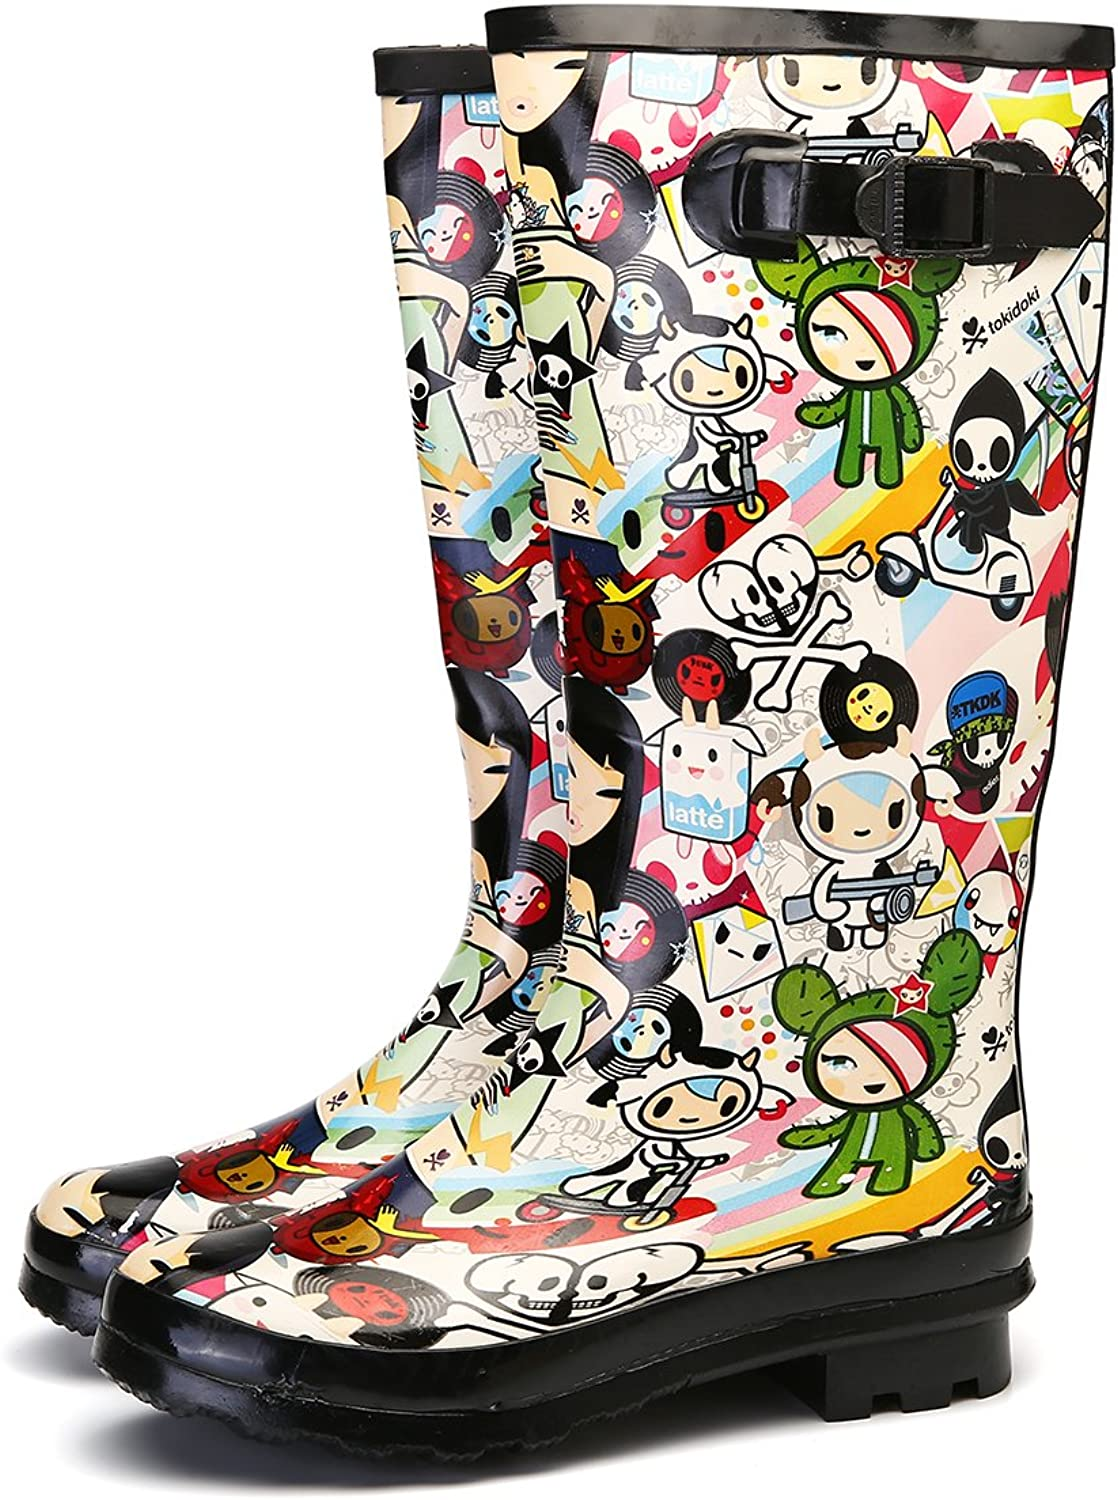 Gracosy Puddles Rain Boots,Young Women Classic colorful Mid Calf Knee High Waterproof Rubber Rain Boots